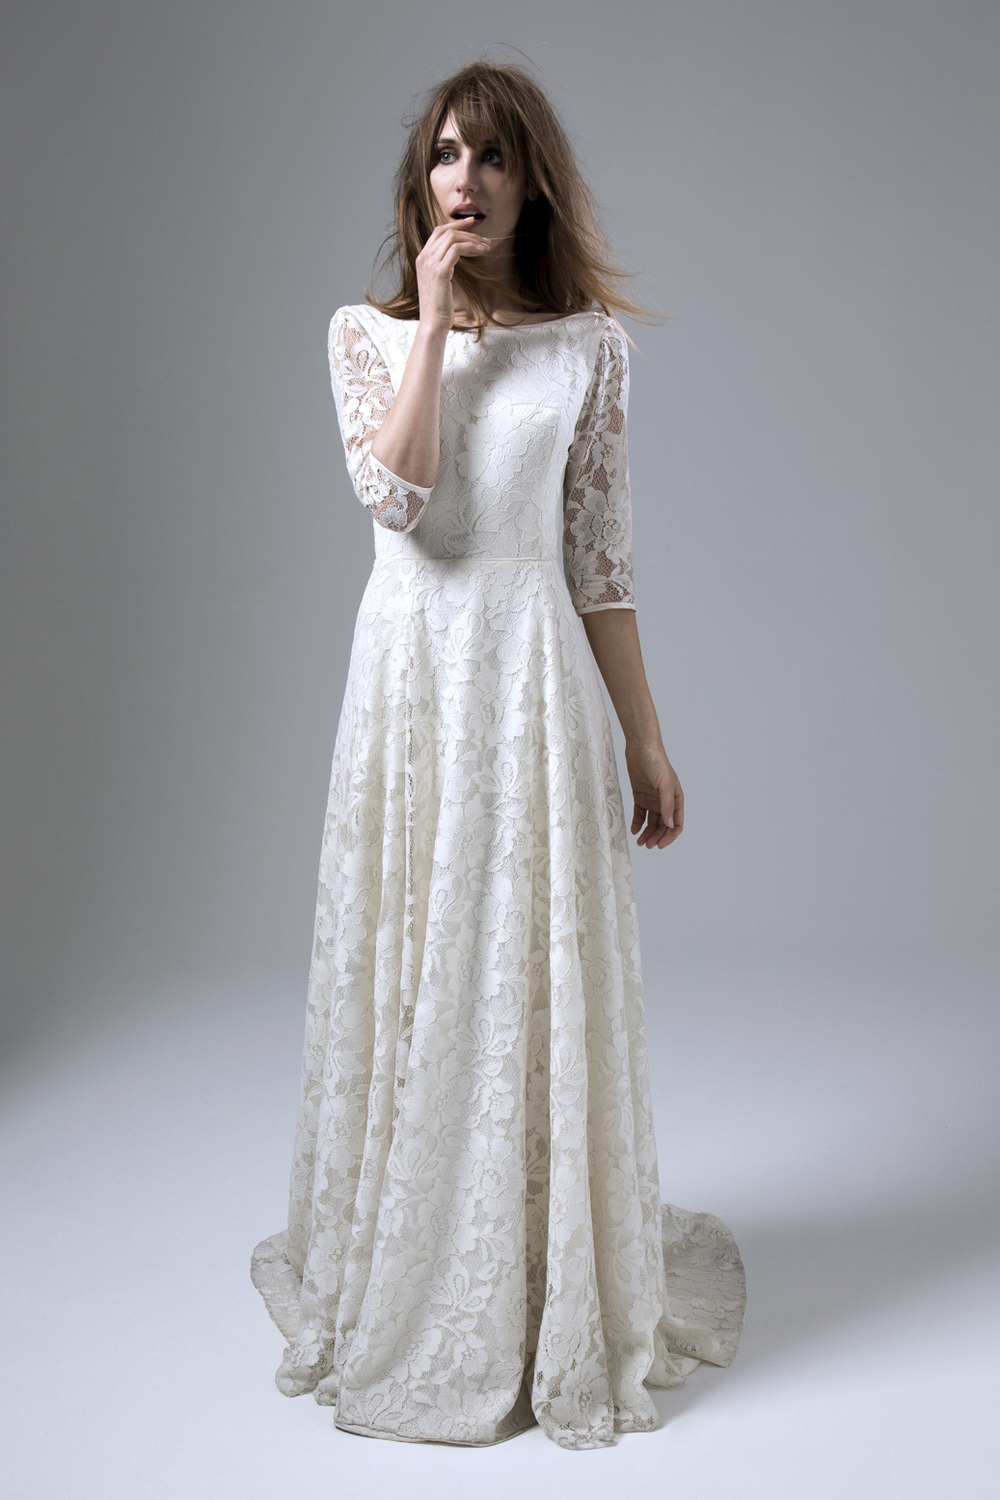 ANTONIA LARGE FLORAL LACE BACKLESS WEDDING DRESS BY HALFPENNY LONDON